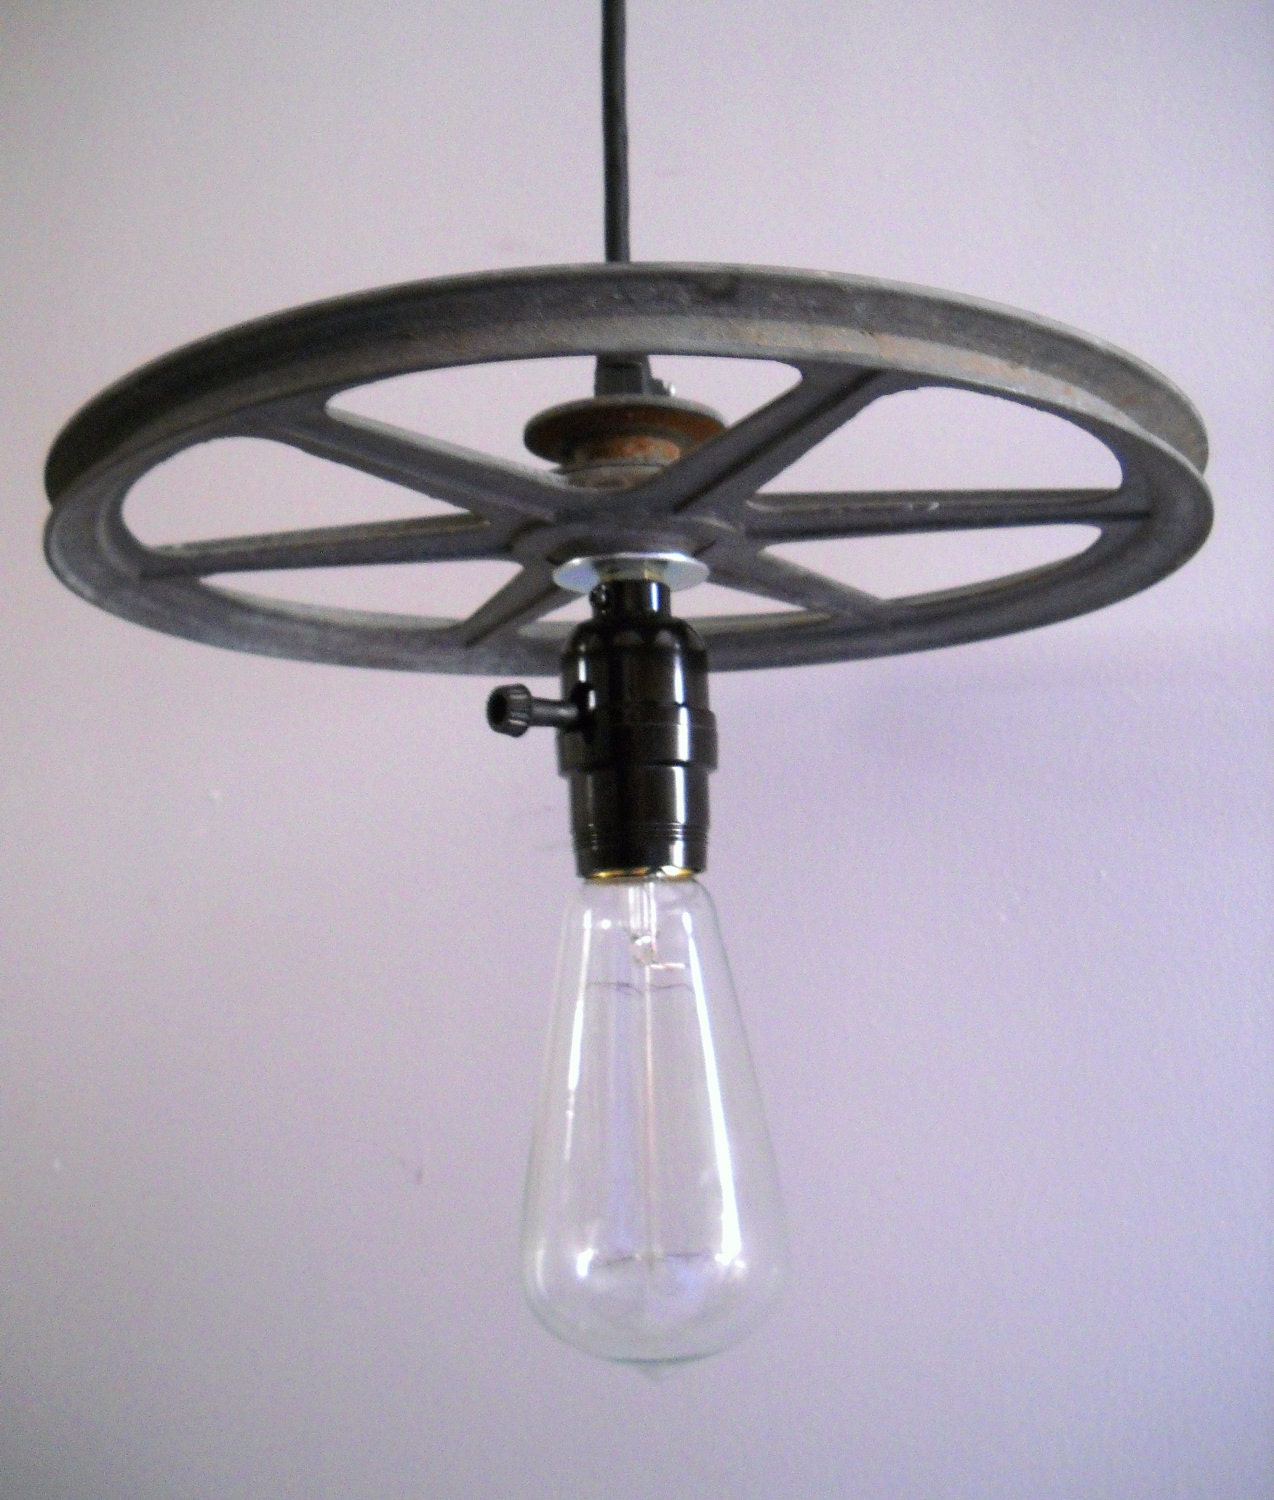 Vintage And Industrial Lighting From Etsy: Industrial Pendant Light Hanging Vintage Metal Steampunk